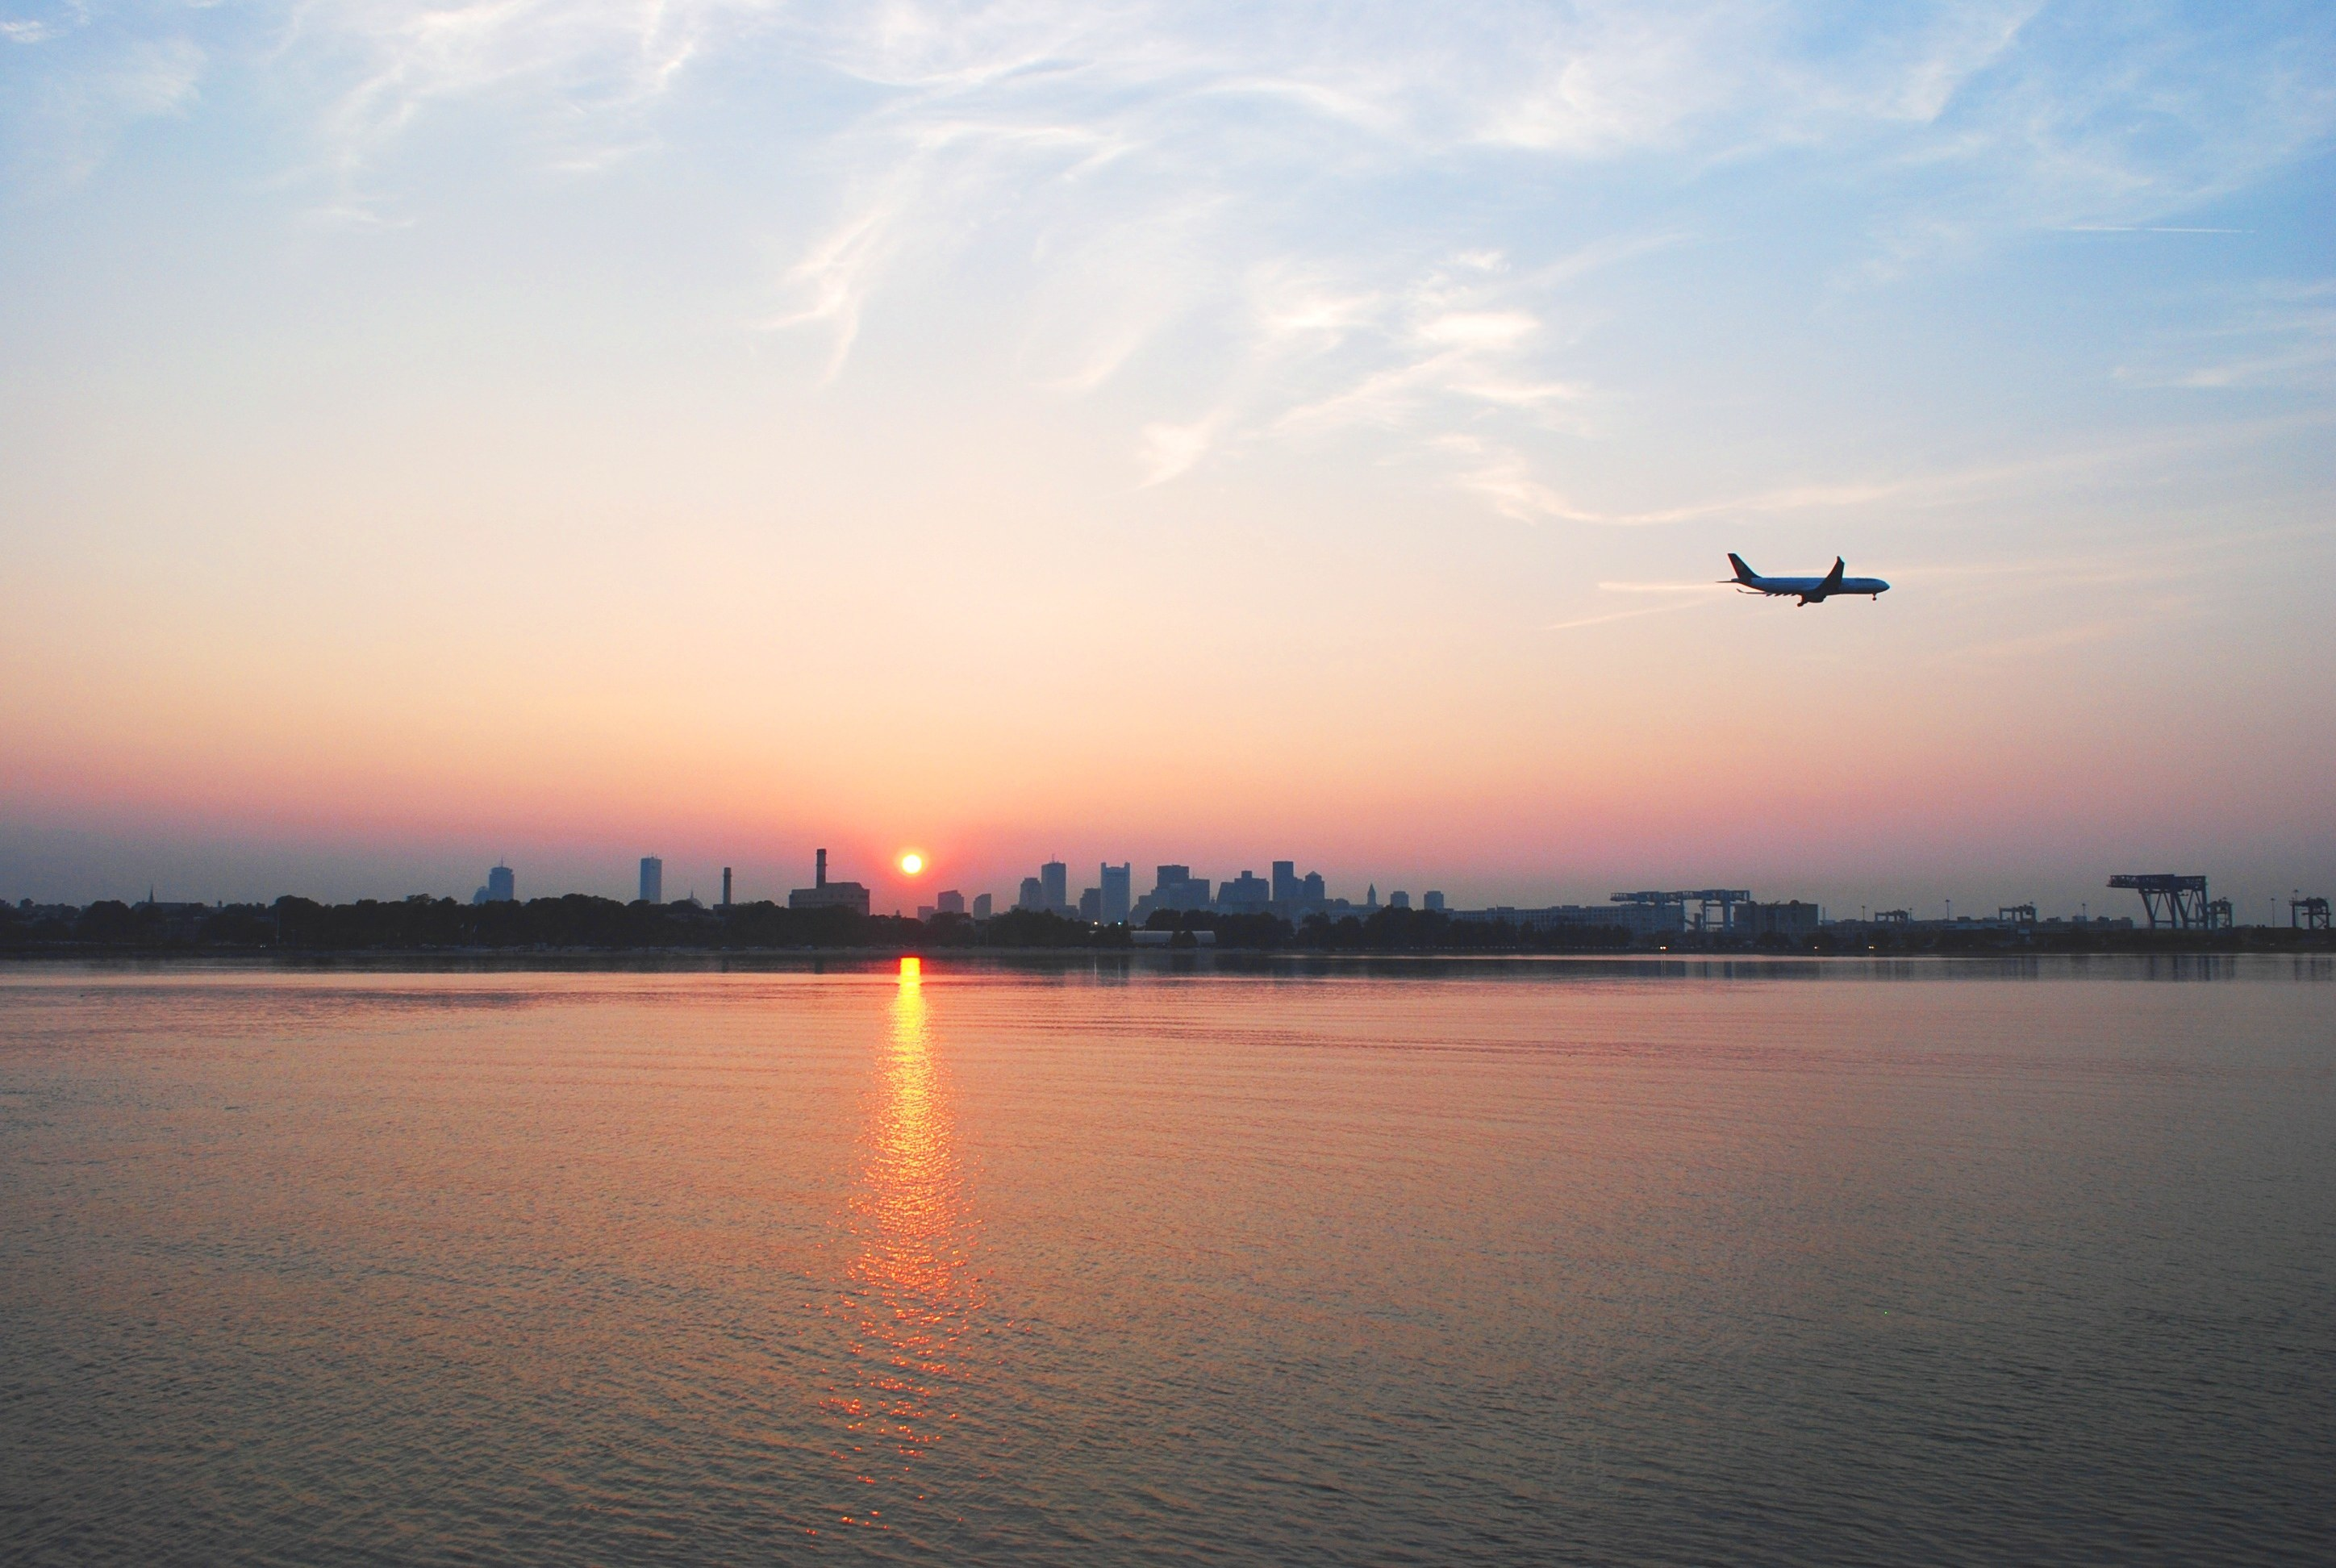 Sunset Landing at Logan Airport - View from Castle Island